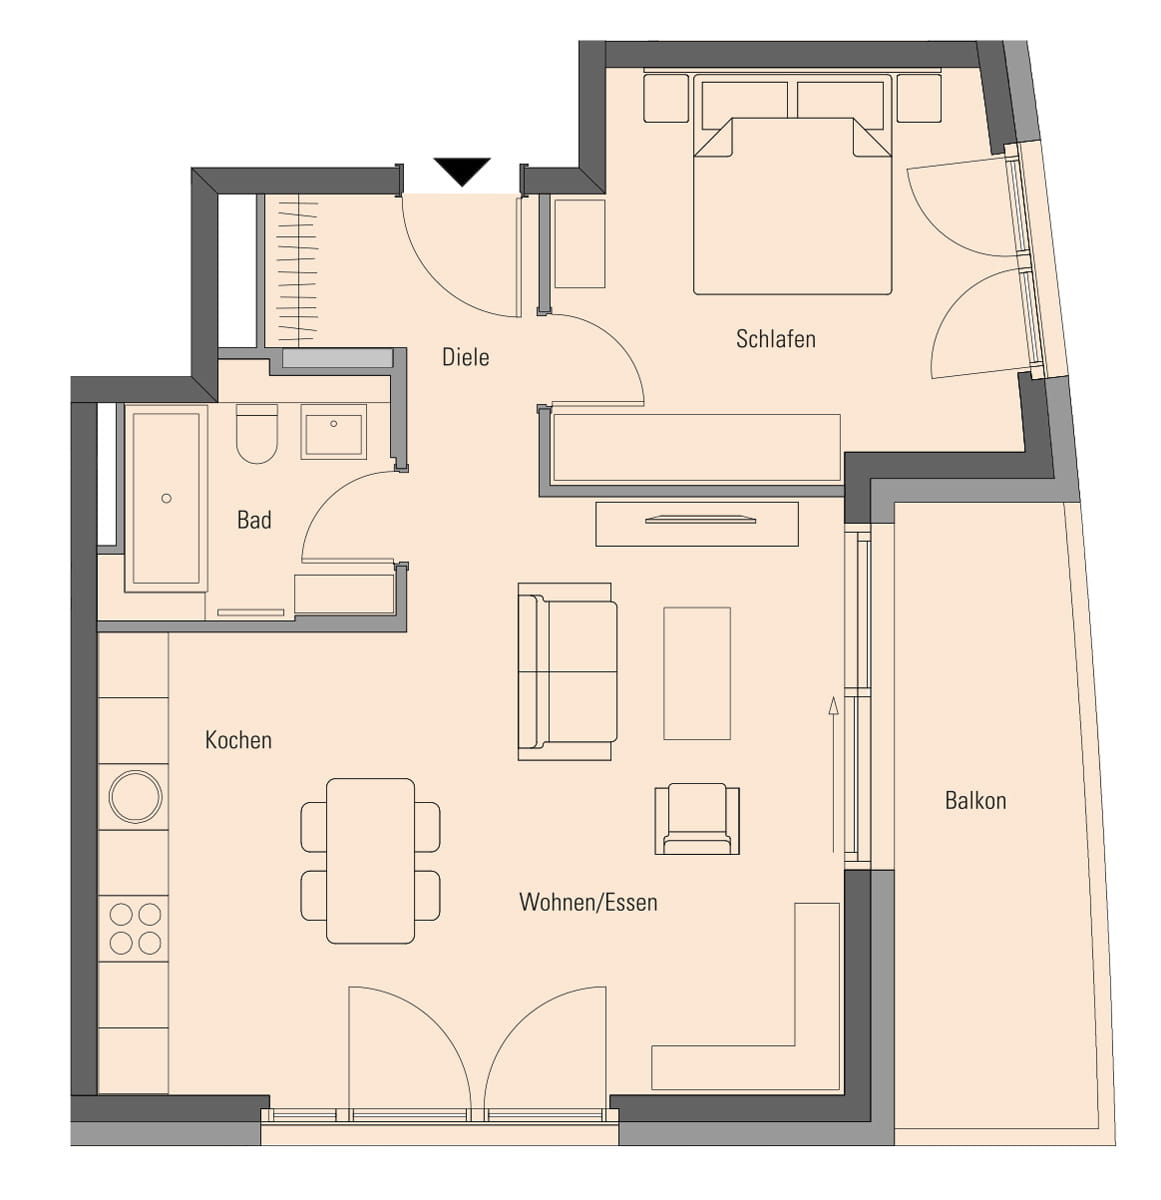 Apartment 2.2.7, 2 Rooms, 64.4 m²